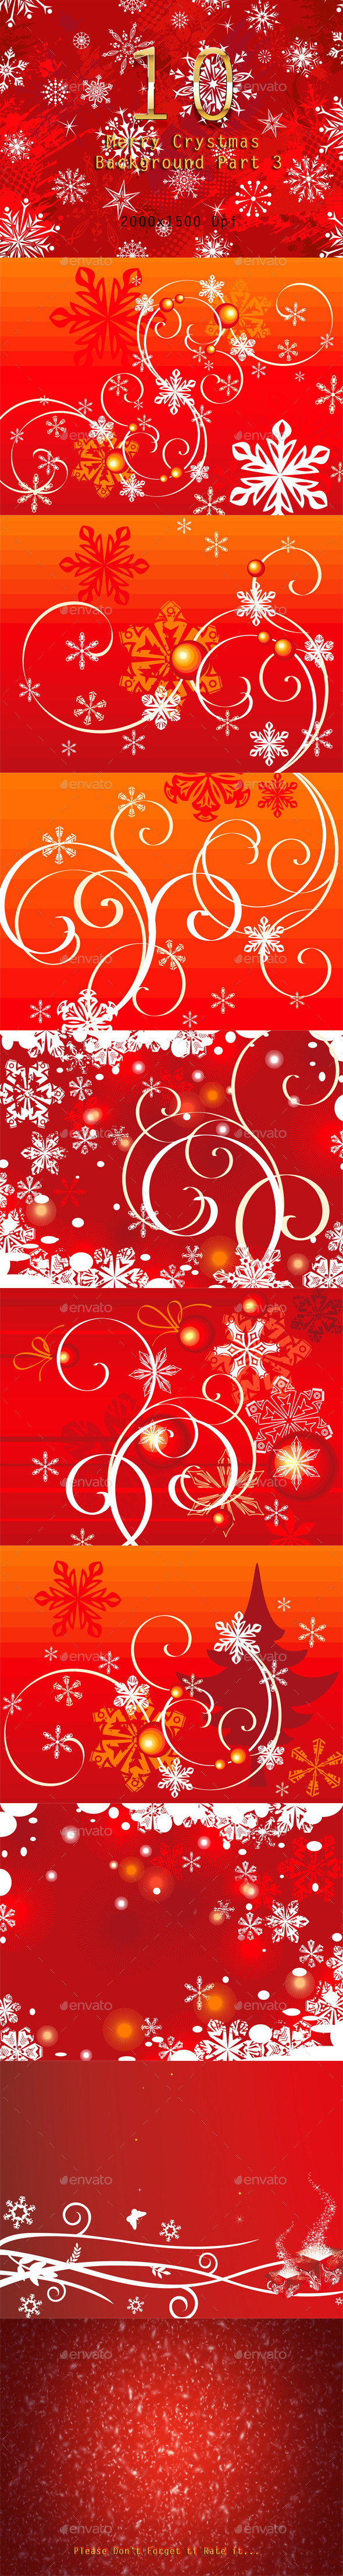 GraphicRiver 10 Merry Crystmas Background Part 3 9711528